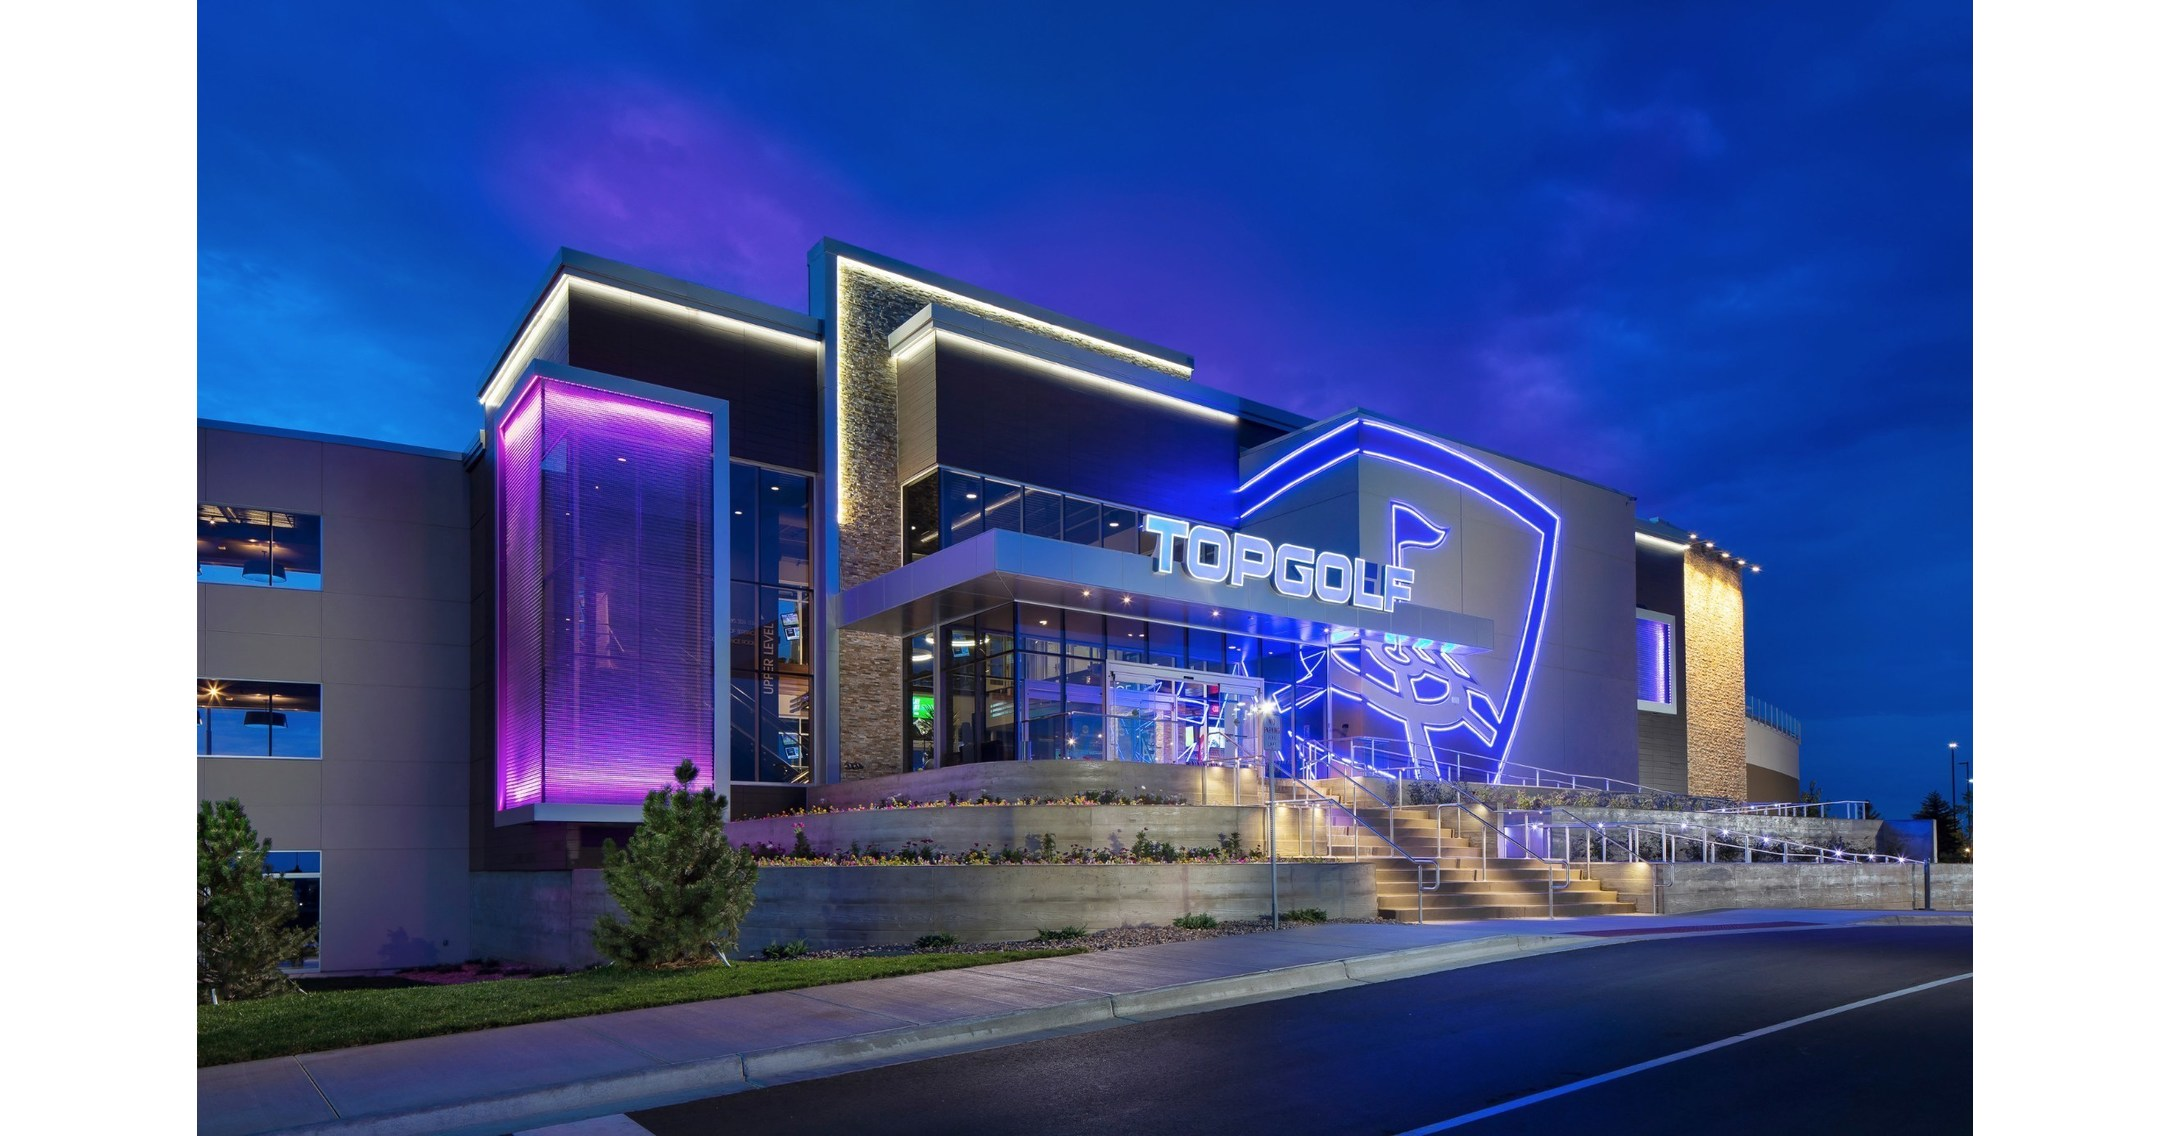 Topgolf Bringing A New Kind Of Social Experience To Silicon Valley